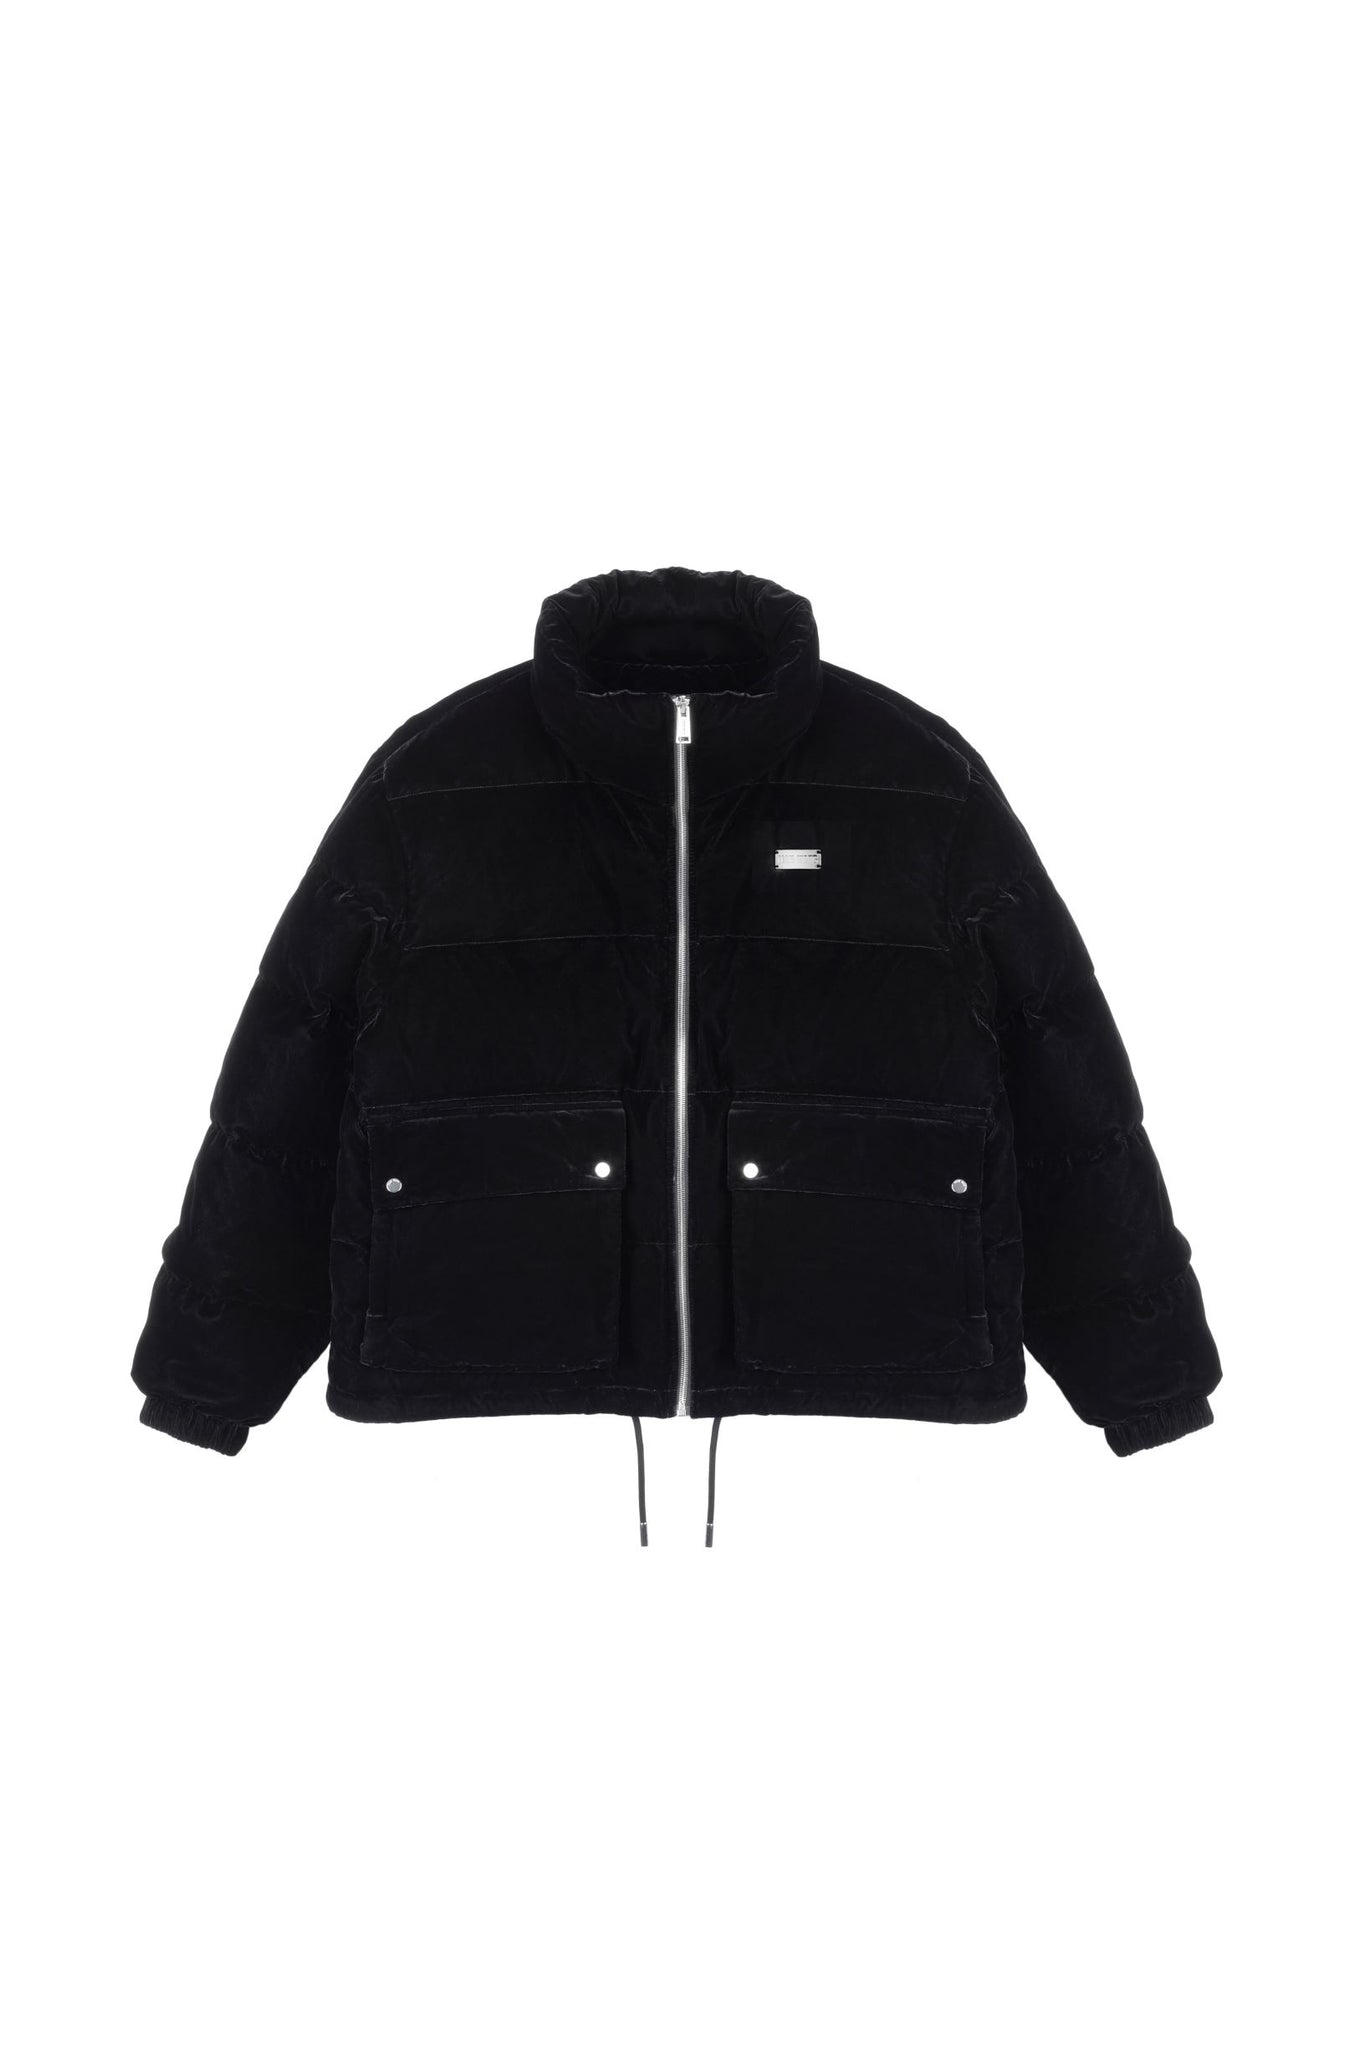 TEAM WANG PRINTED LOGO VELVET DOWN JACKET